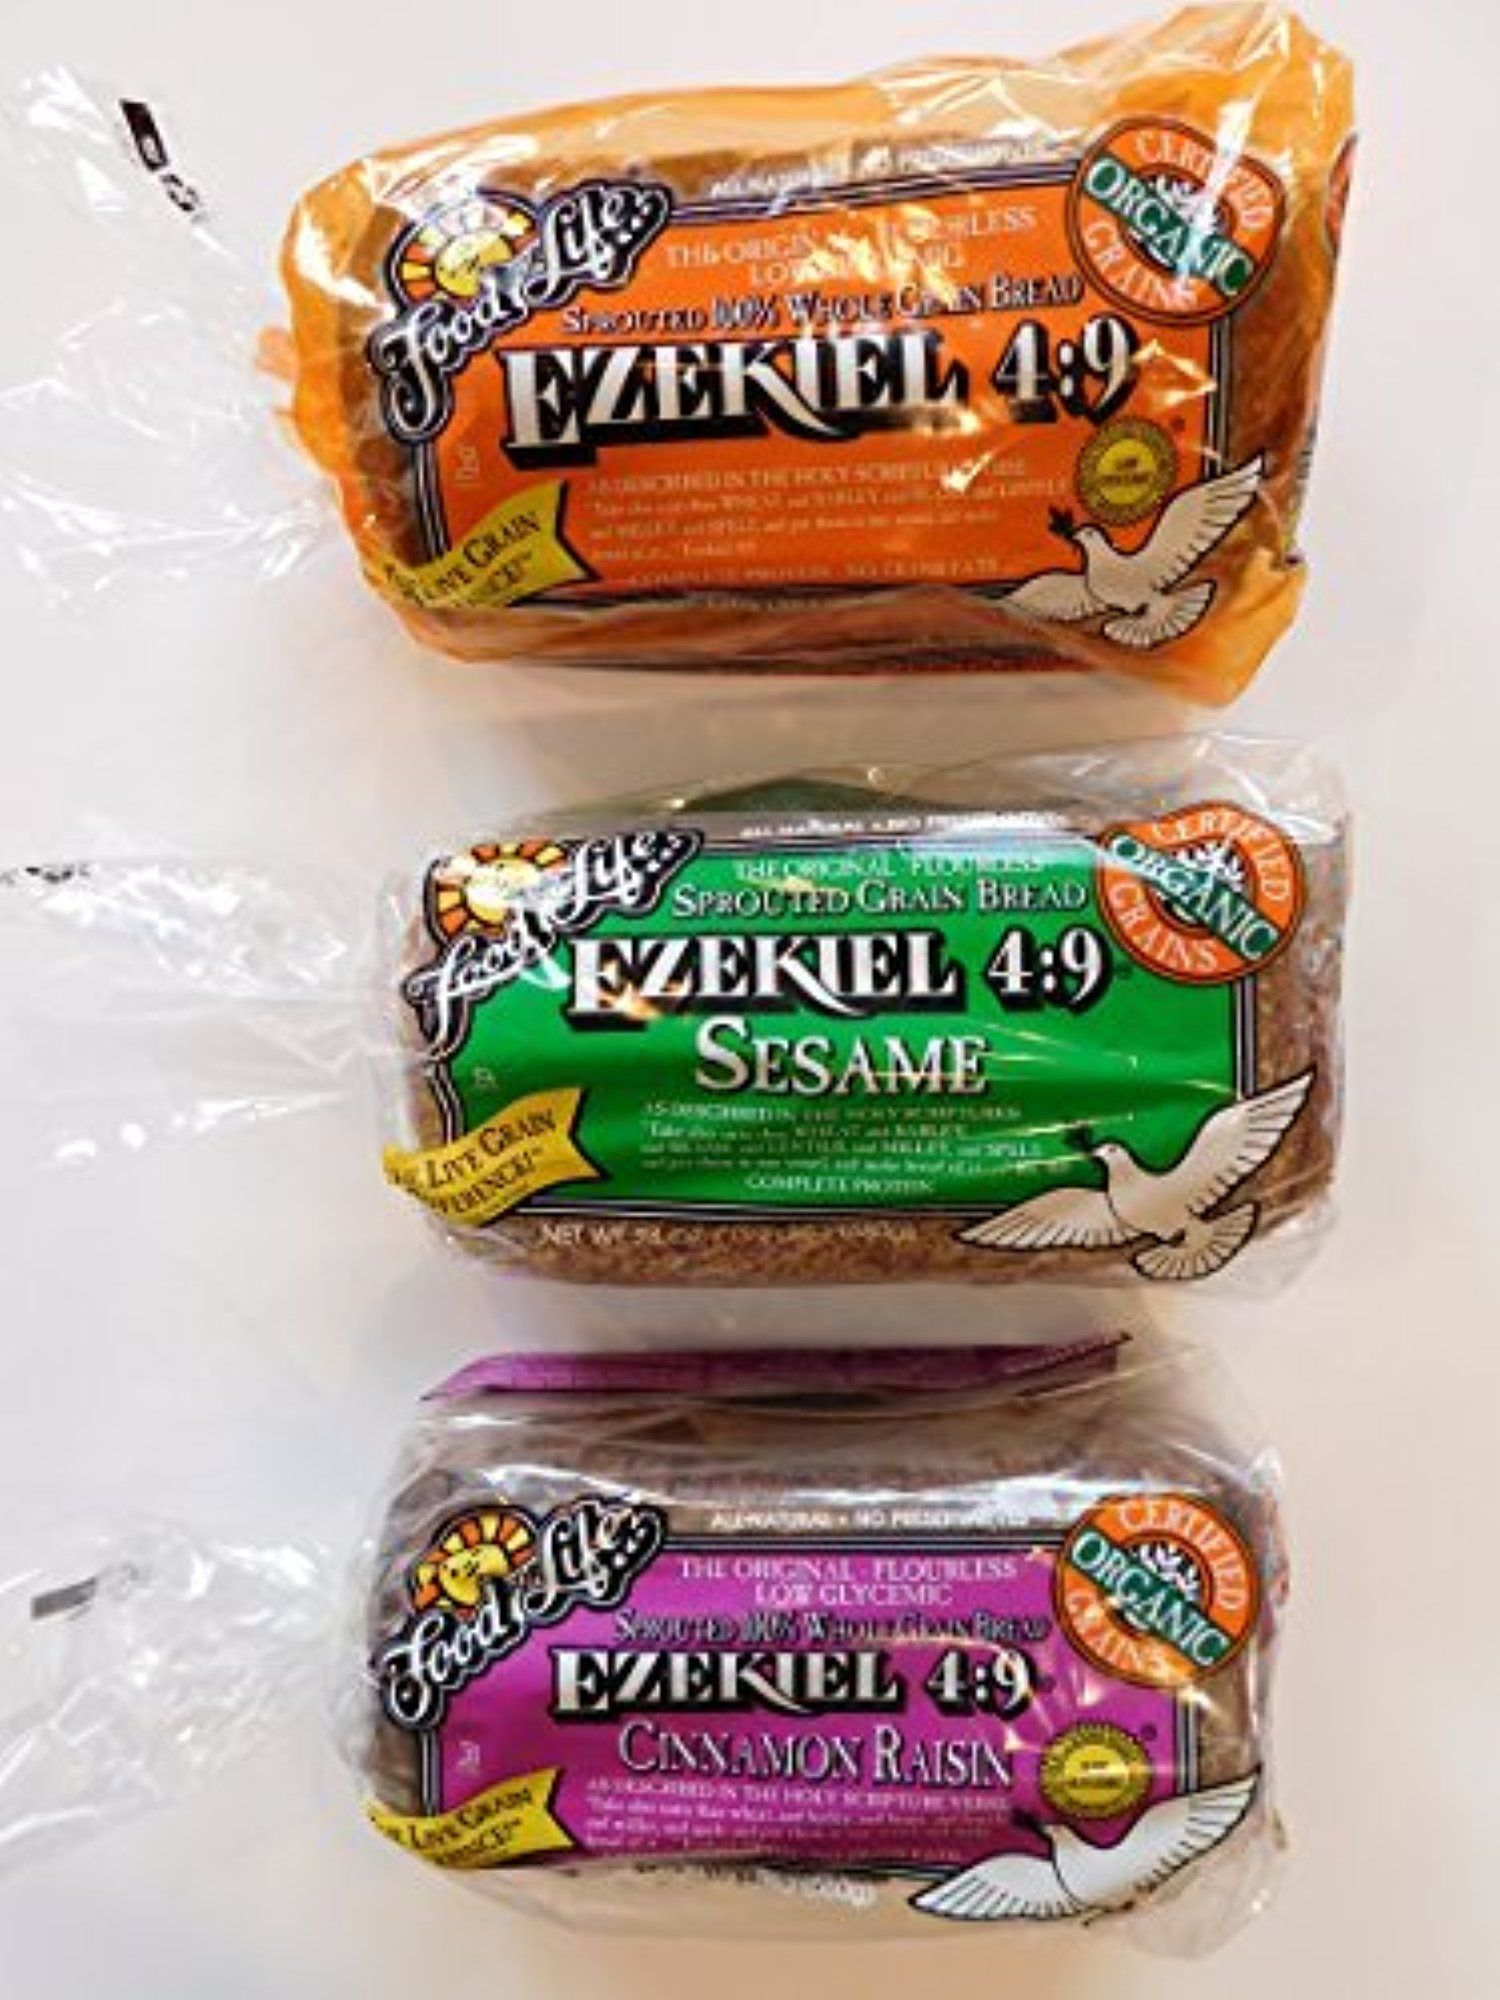 Food For Life Ezekiel 4 9 Bread Original Sprouted Cinnamon Raisin Sesame 3 Pack By Bunch Of Chazari Ezekiel Bread Recipe Easy Ezekiel Bread Cinnamon Raisin